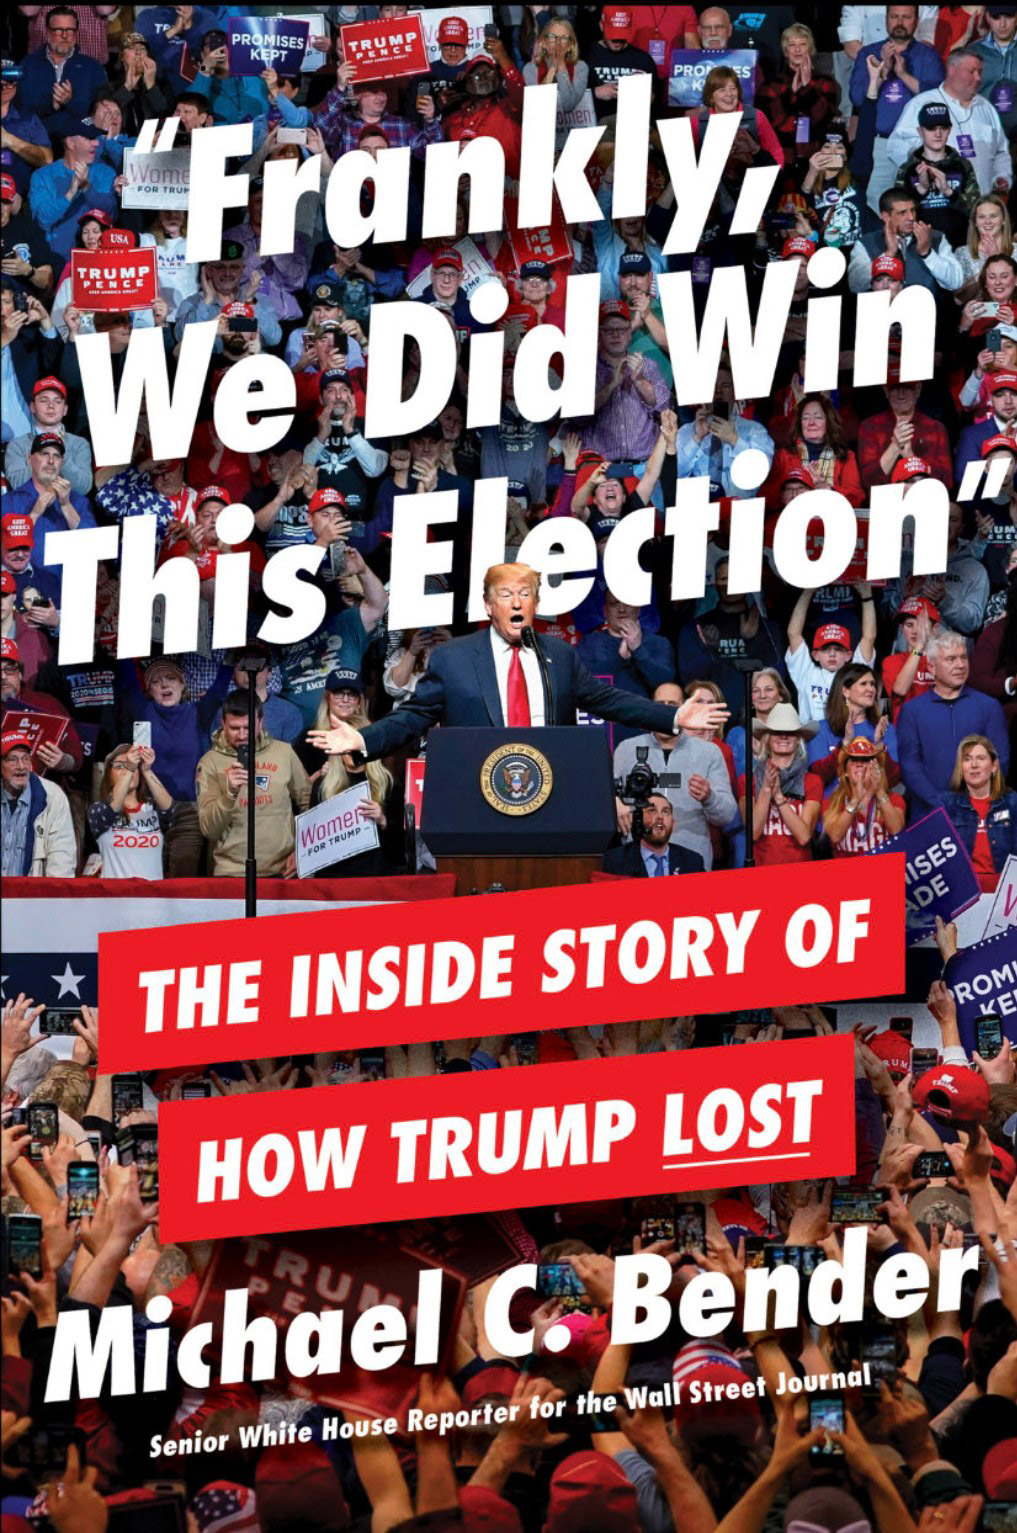 Frankly, We Did Win This Election: The Inside Story of How Trump Lost by Michael C. Bender